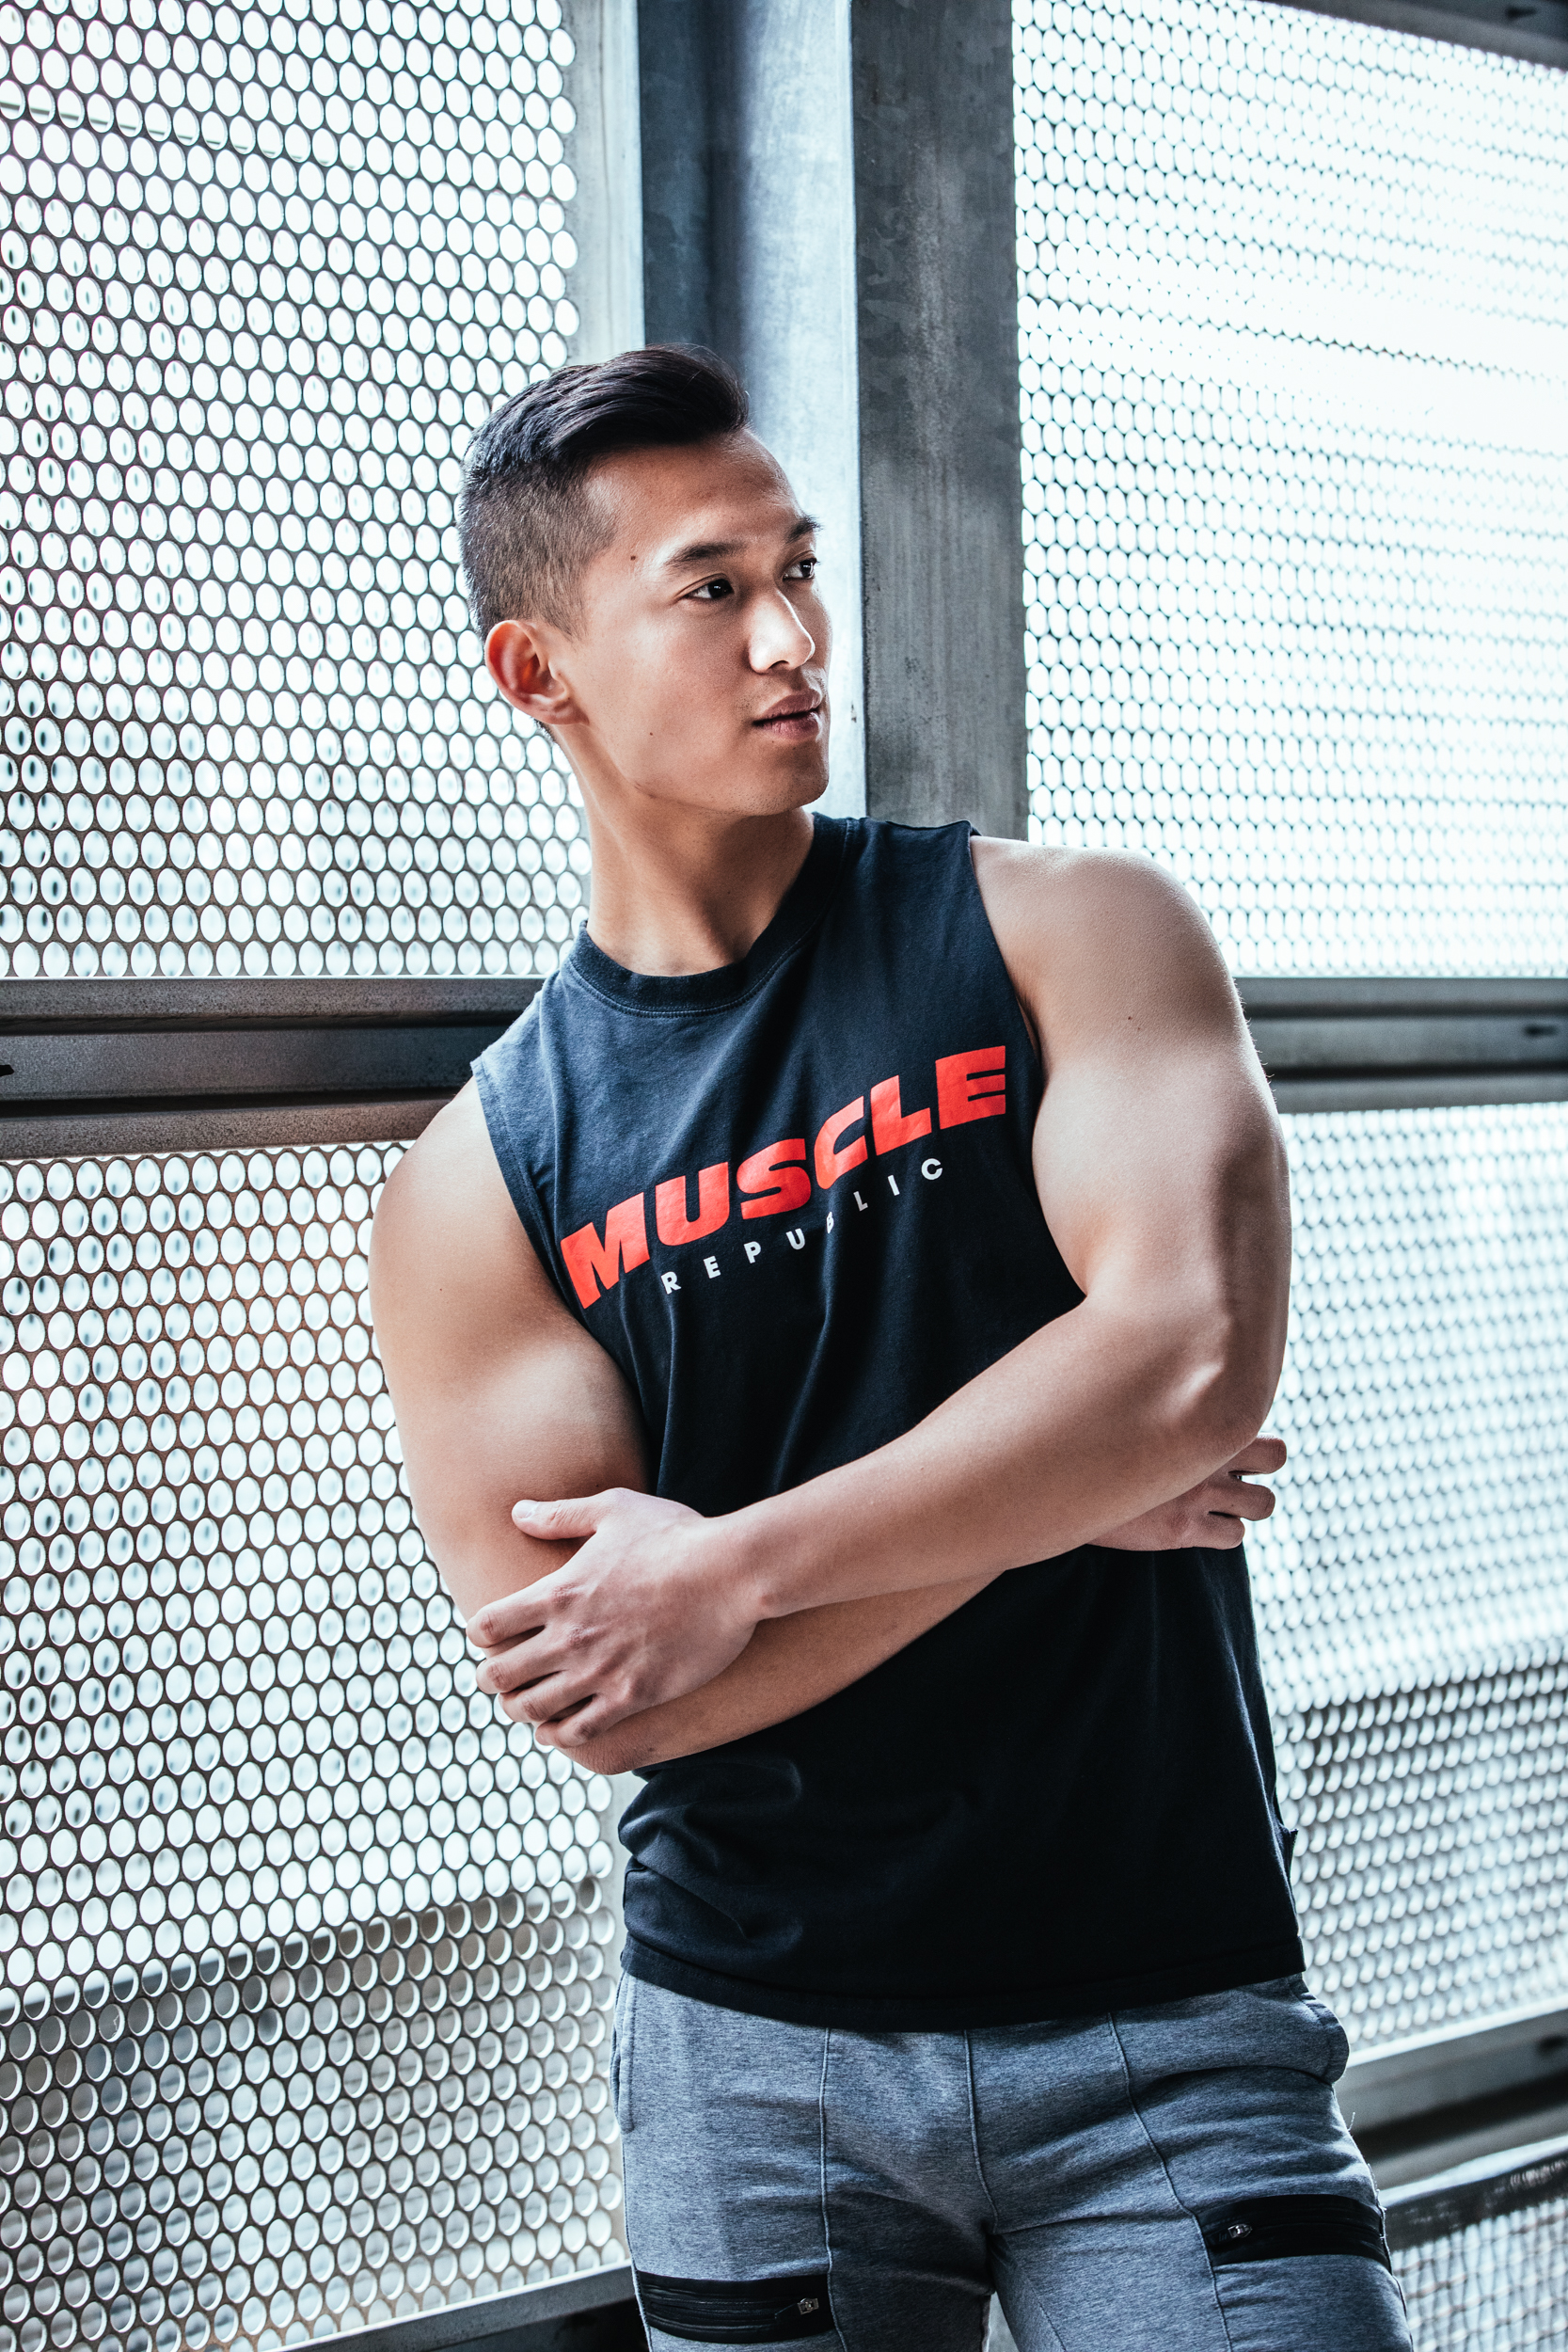 Joho Melbourne Asian fitness model wearing muscle republic garments